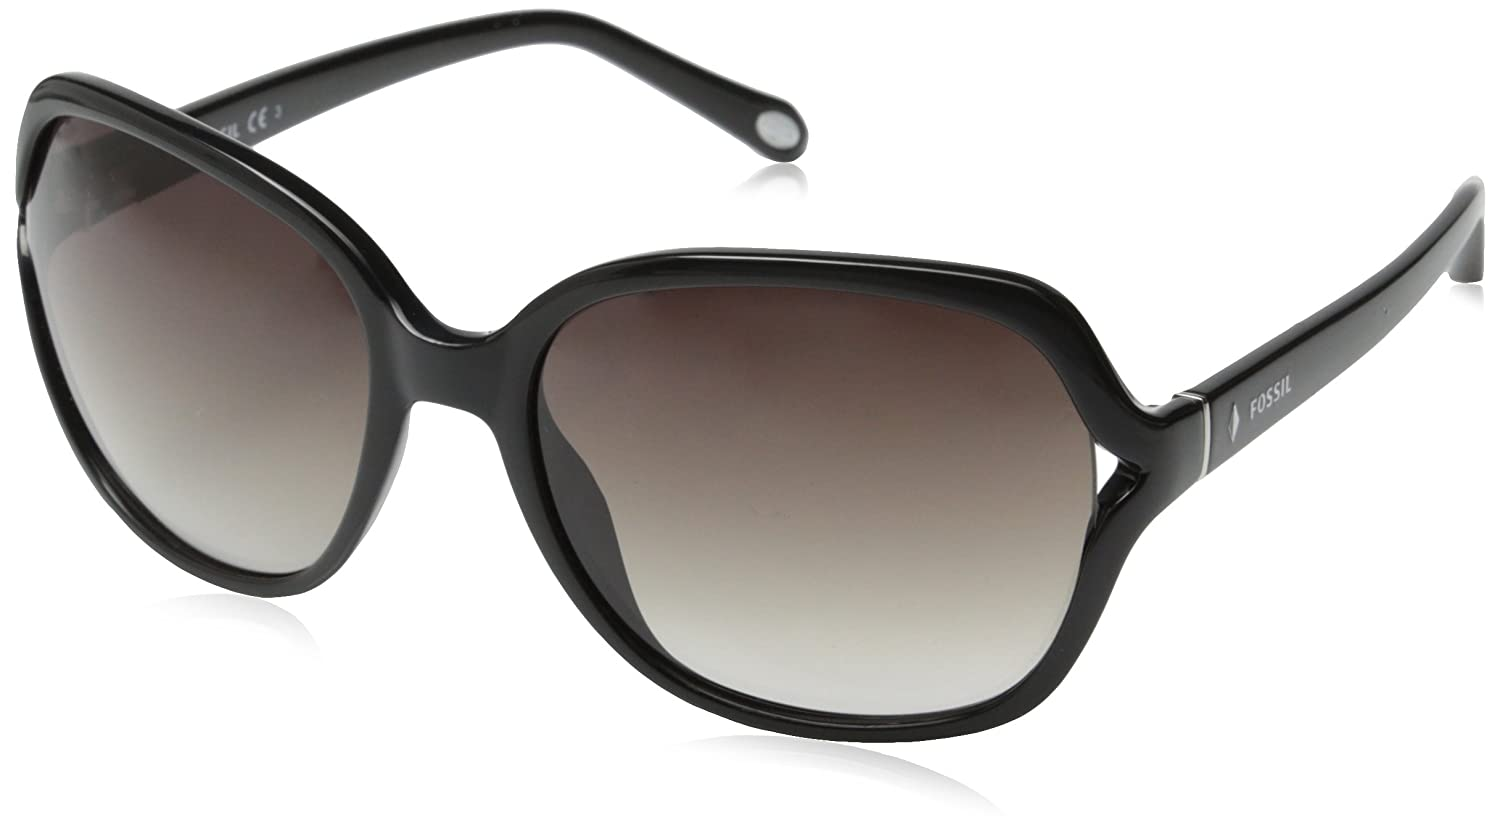 c756bf5b84 Amazon.com  Fossil Women s FOS3020S Square Sunglasses